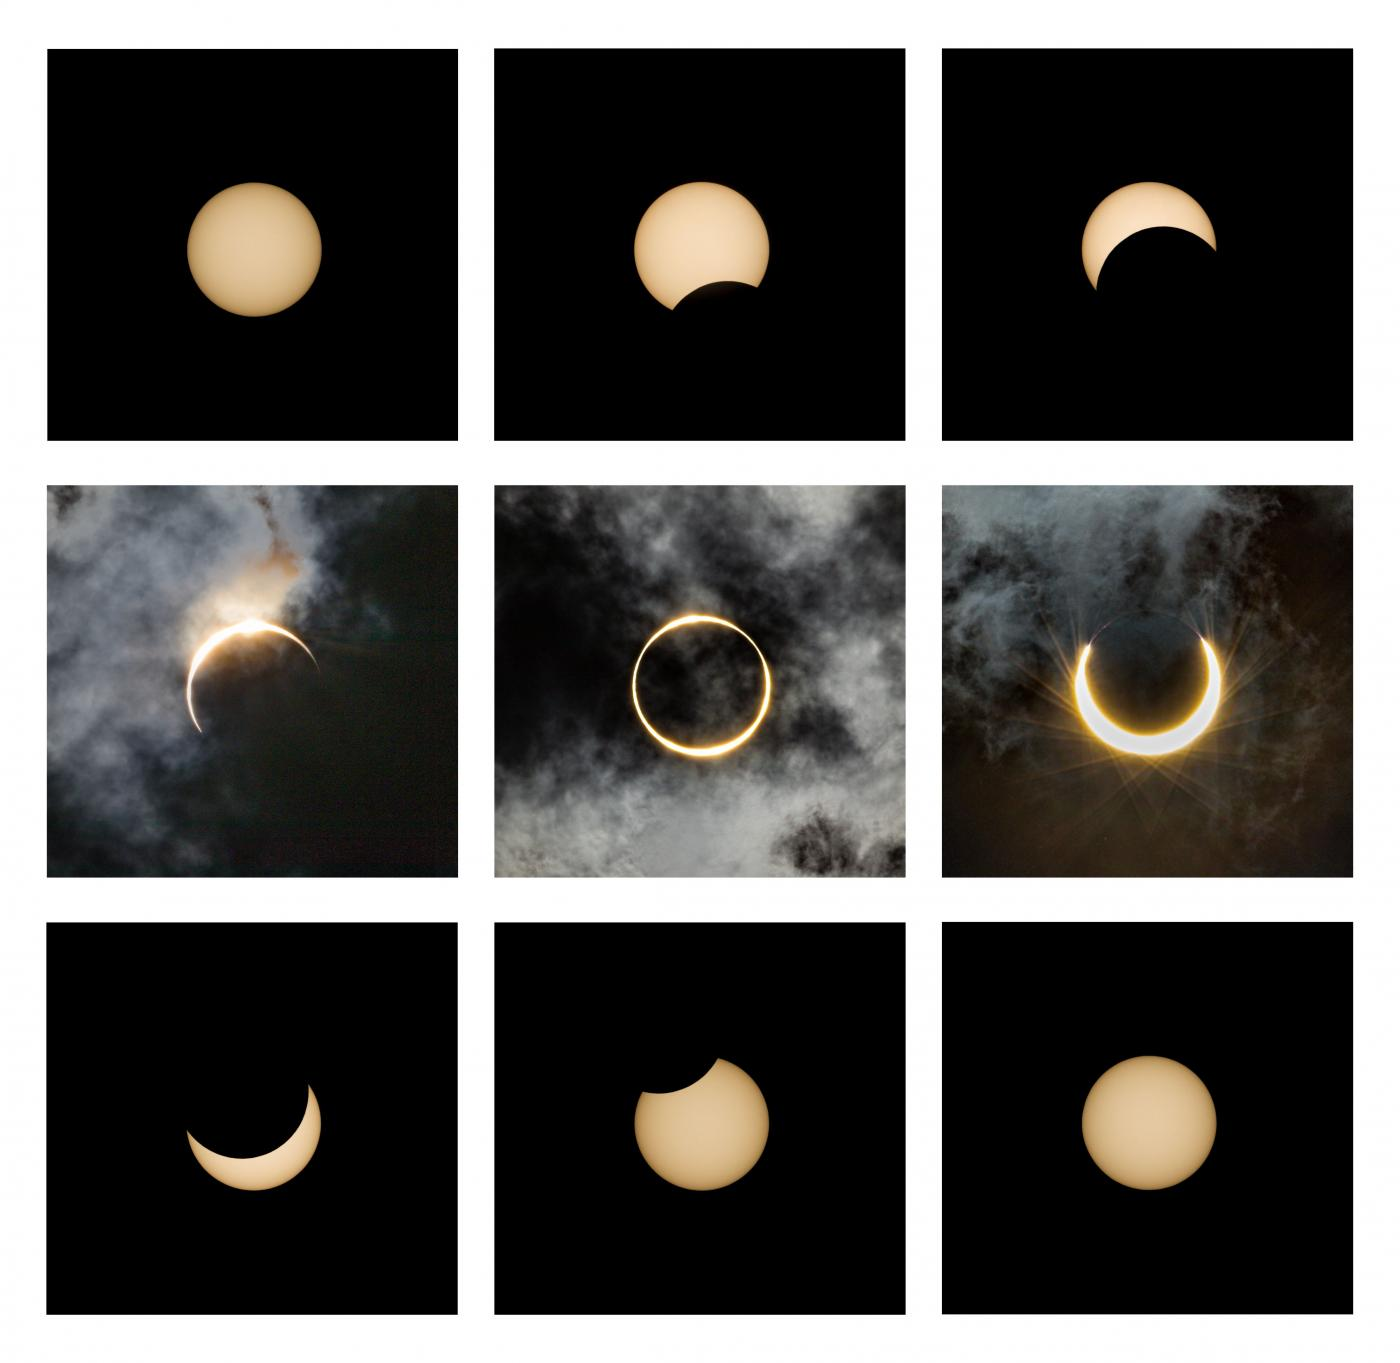 An image showing 'The Whole Process of an Annual Eclipse '